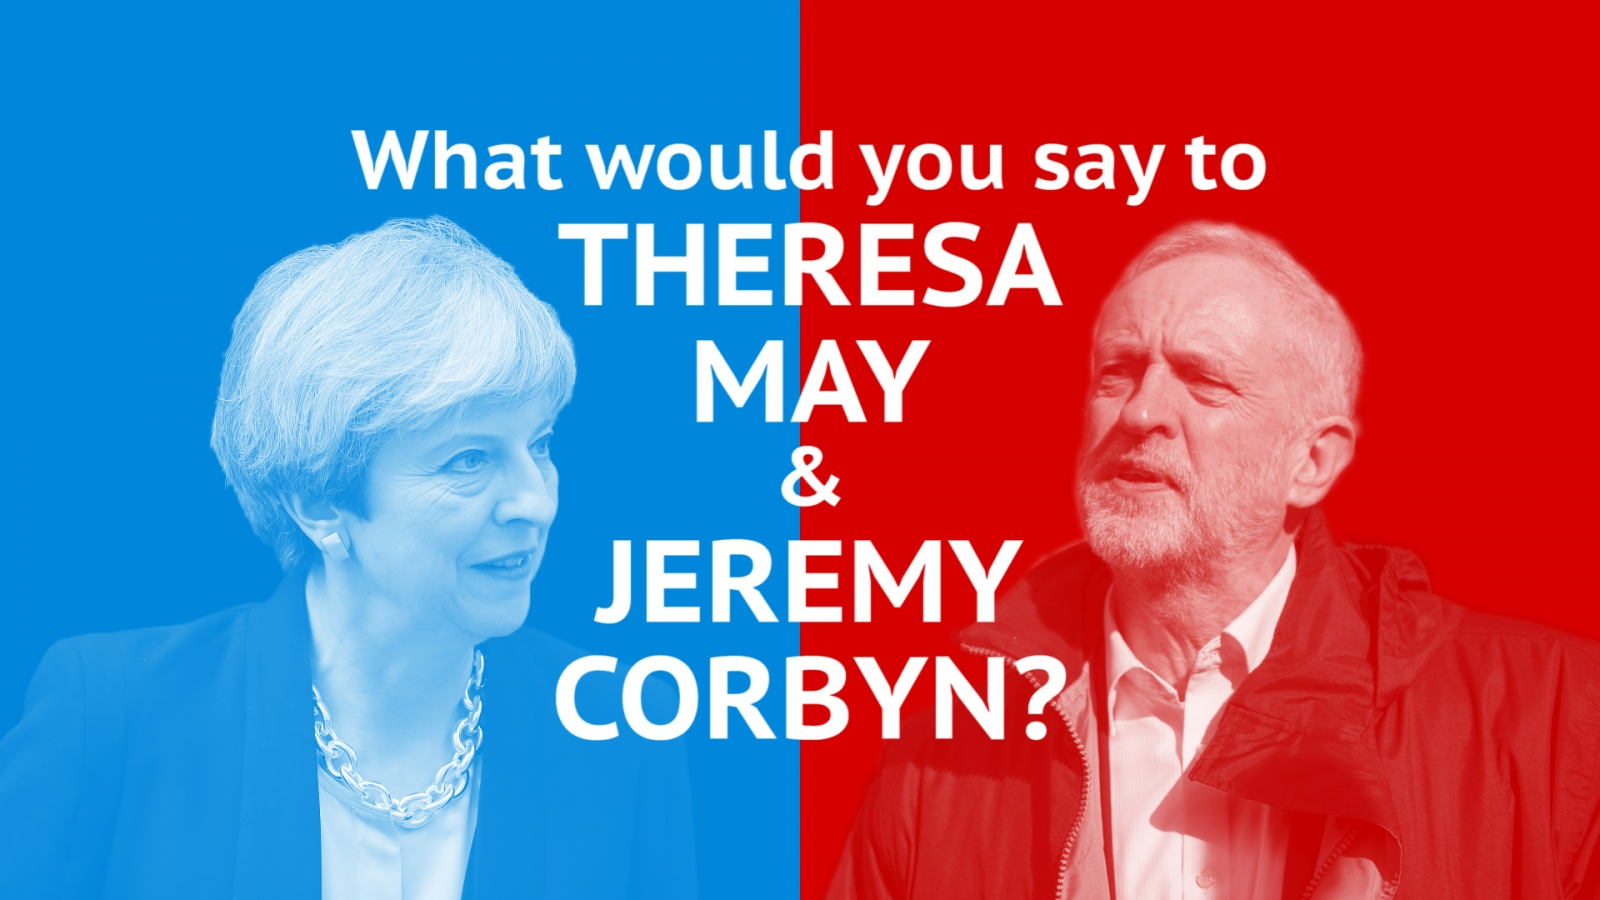 what-would-you-say-if-you-met-theresa-may-or-jeremy-corbyn